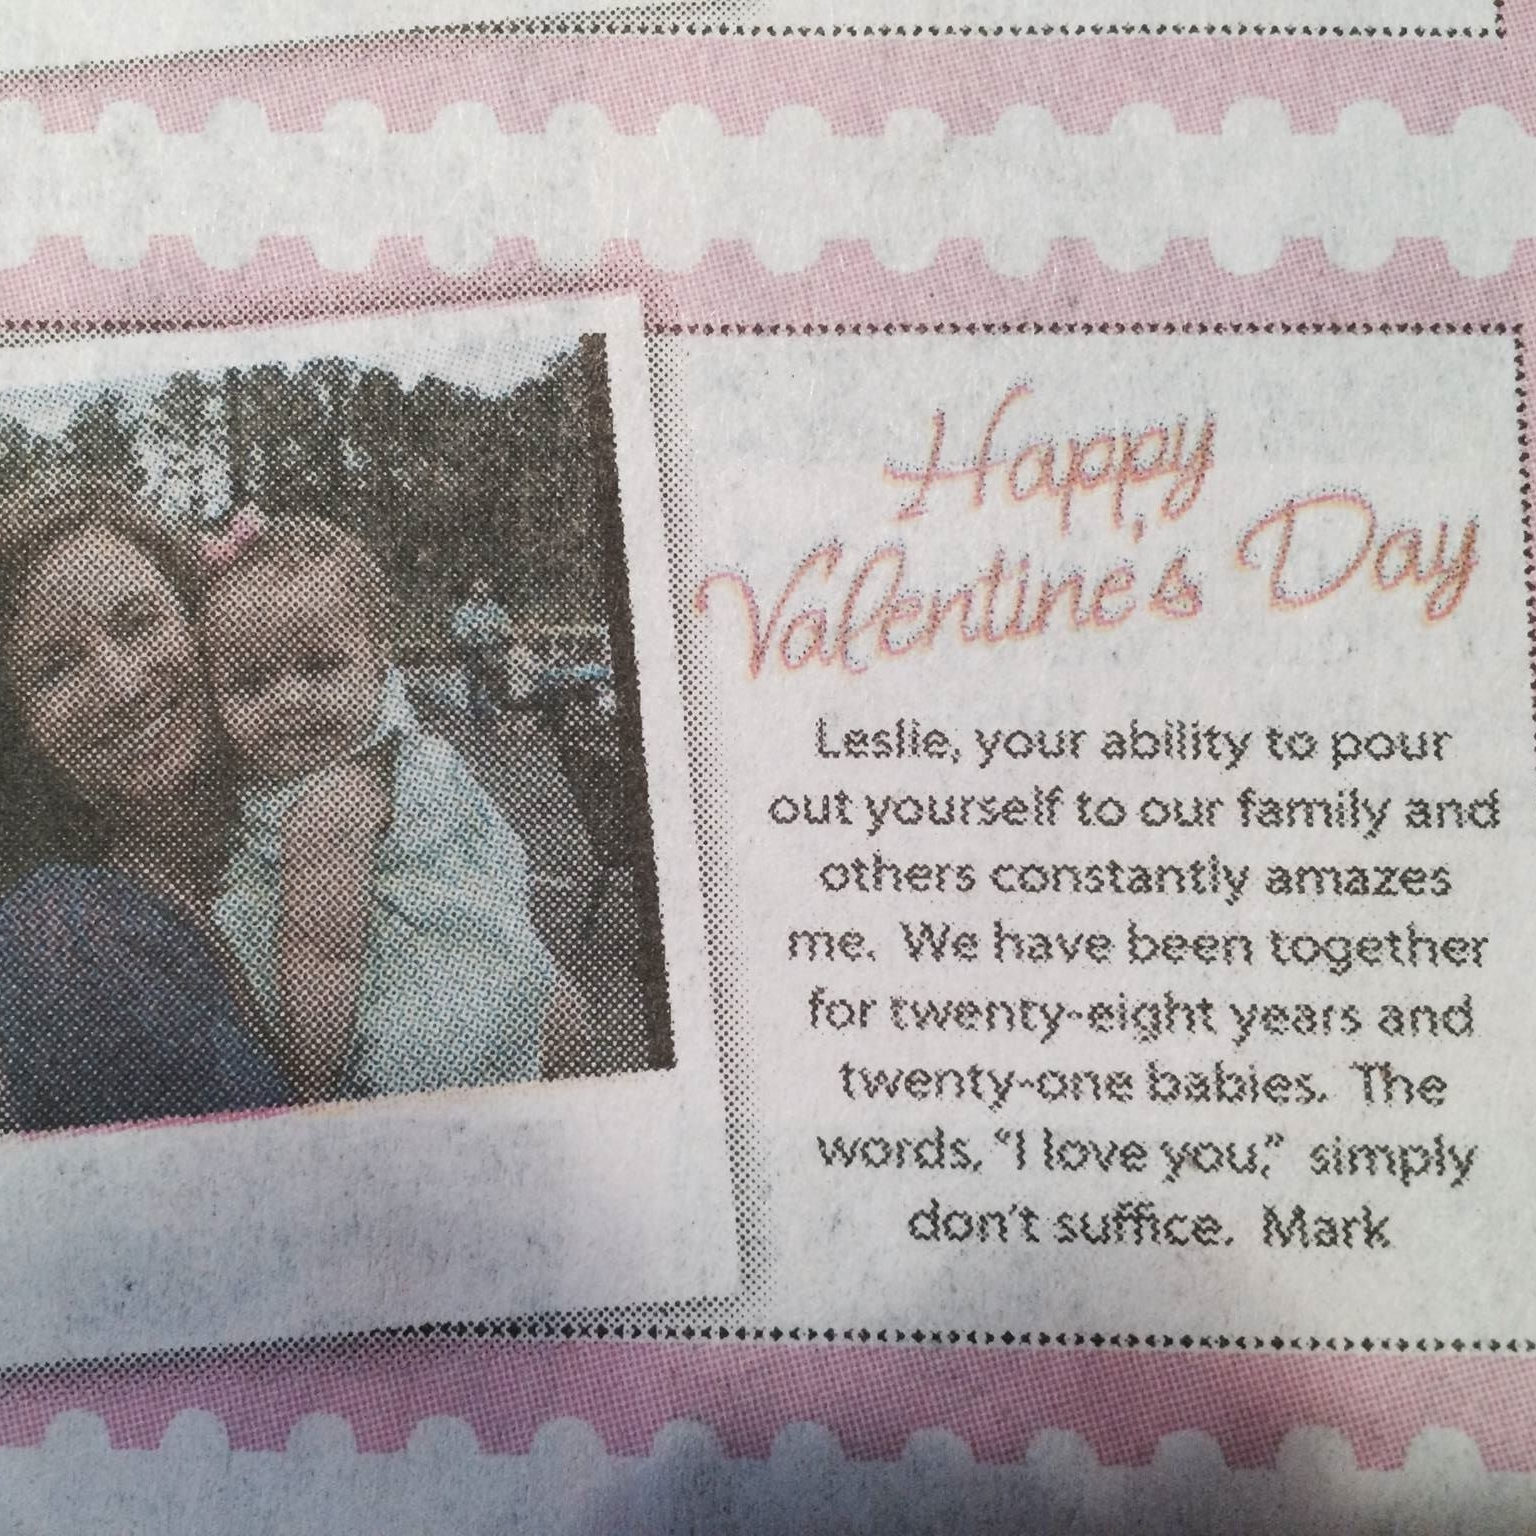 Note from Mark to Leslie in the newspaper